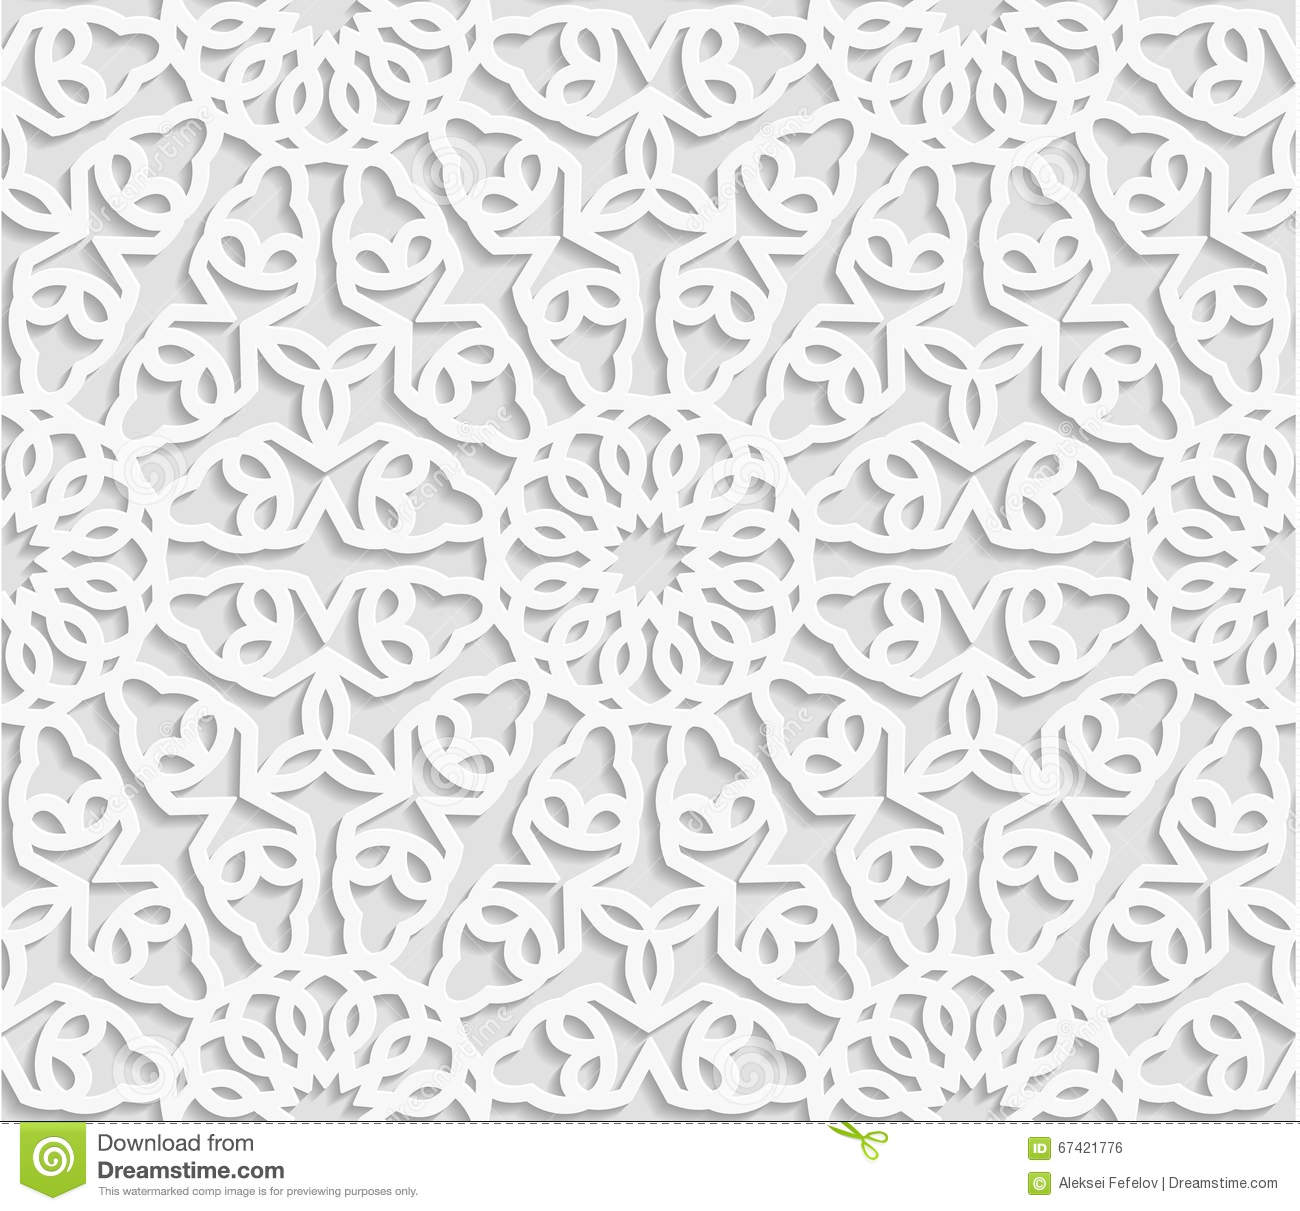 seamless arabic geometric pattern east ornament indian ornament persian moti stock vector illustration of persian geometric 67421776 dreamstime com